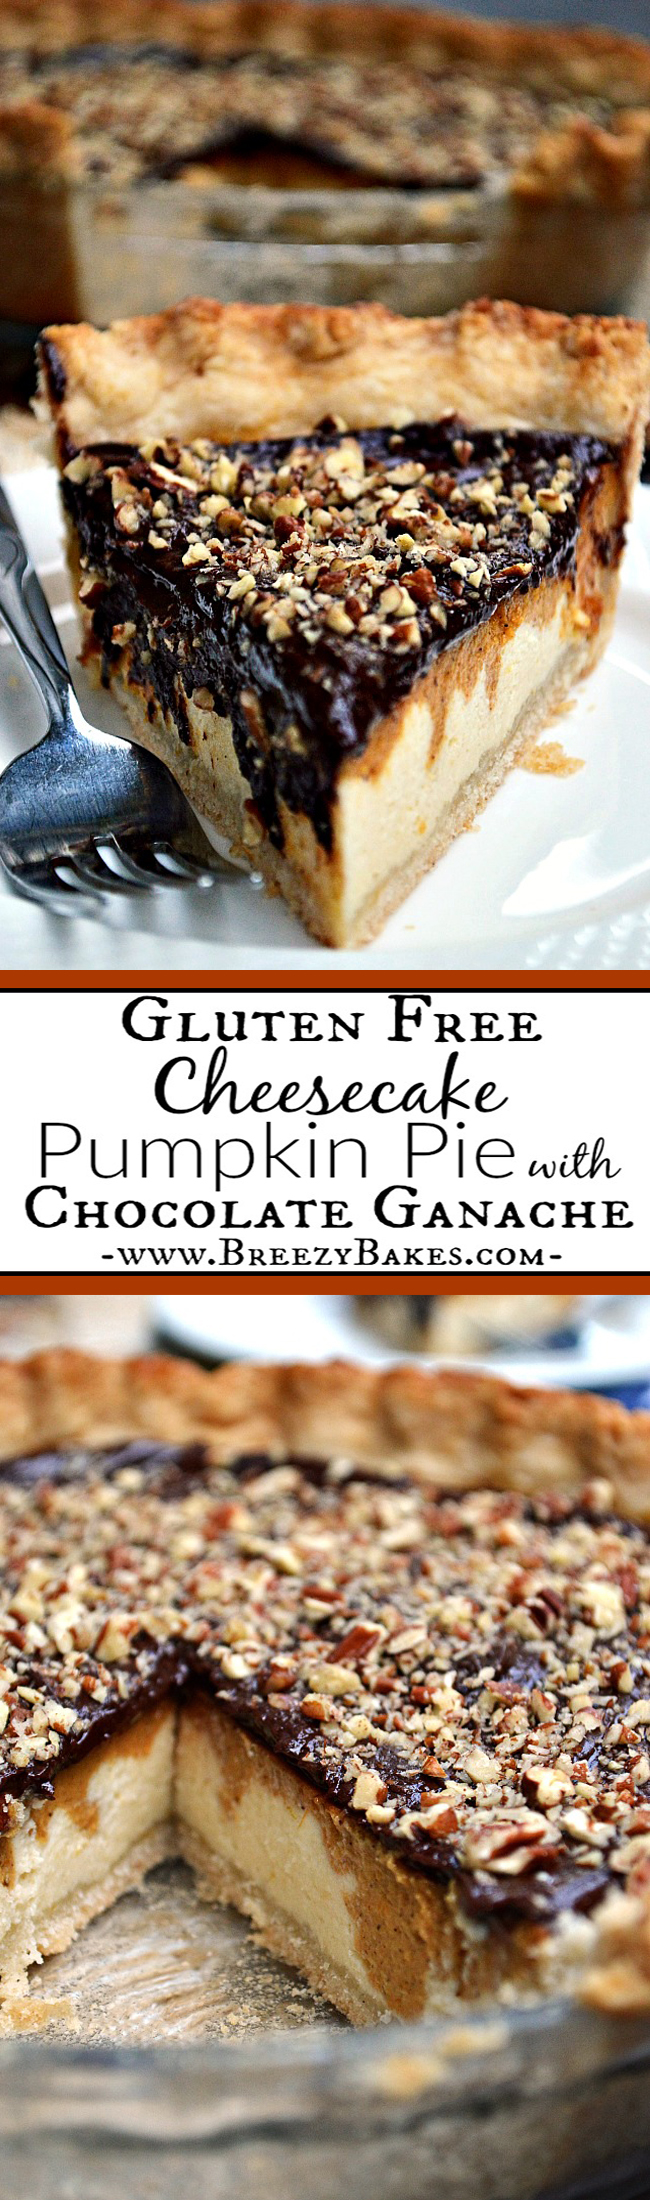 Cheesecake??? Pumpkin Pie??? Chocolate??? If you just can't decide, give this Gluten Free Layered Cheesecake Pumpkin Pie with Chocolate Ganache a whirl. It's sure to please ALL taste buds!